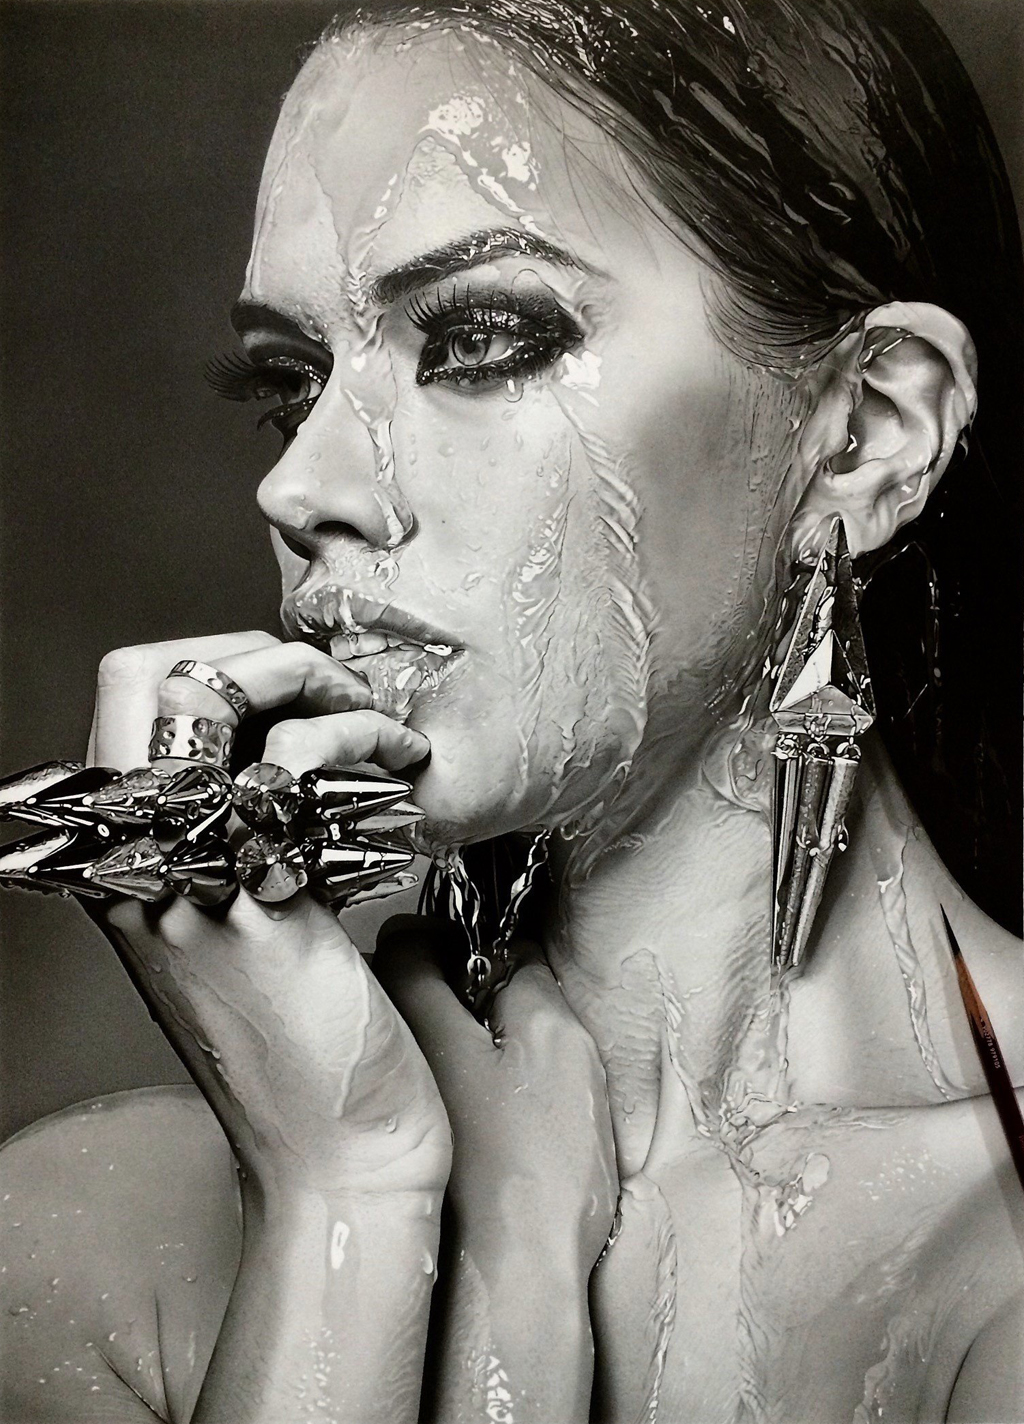 Hyper Realistic Pencil Drawings by Kohei Ohmori